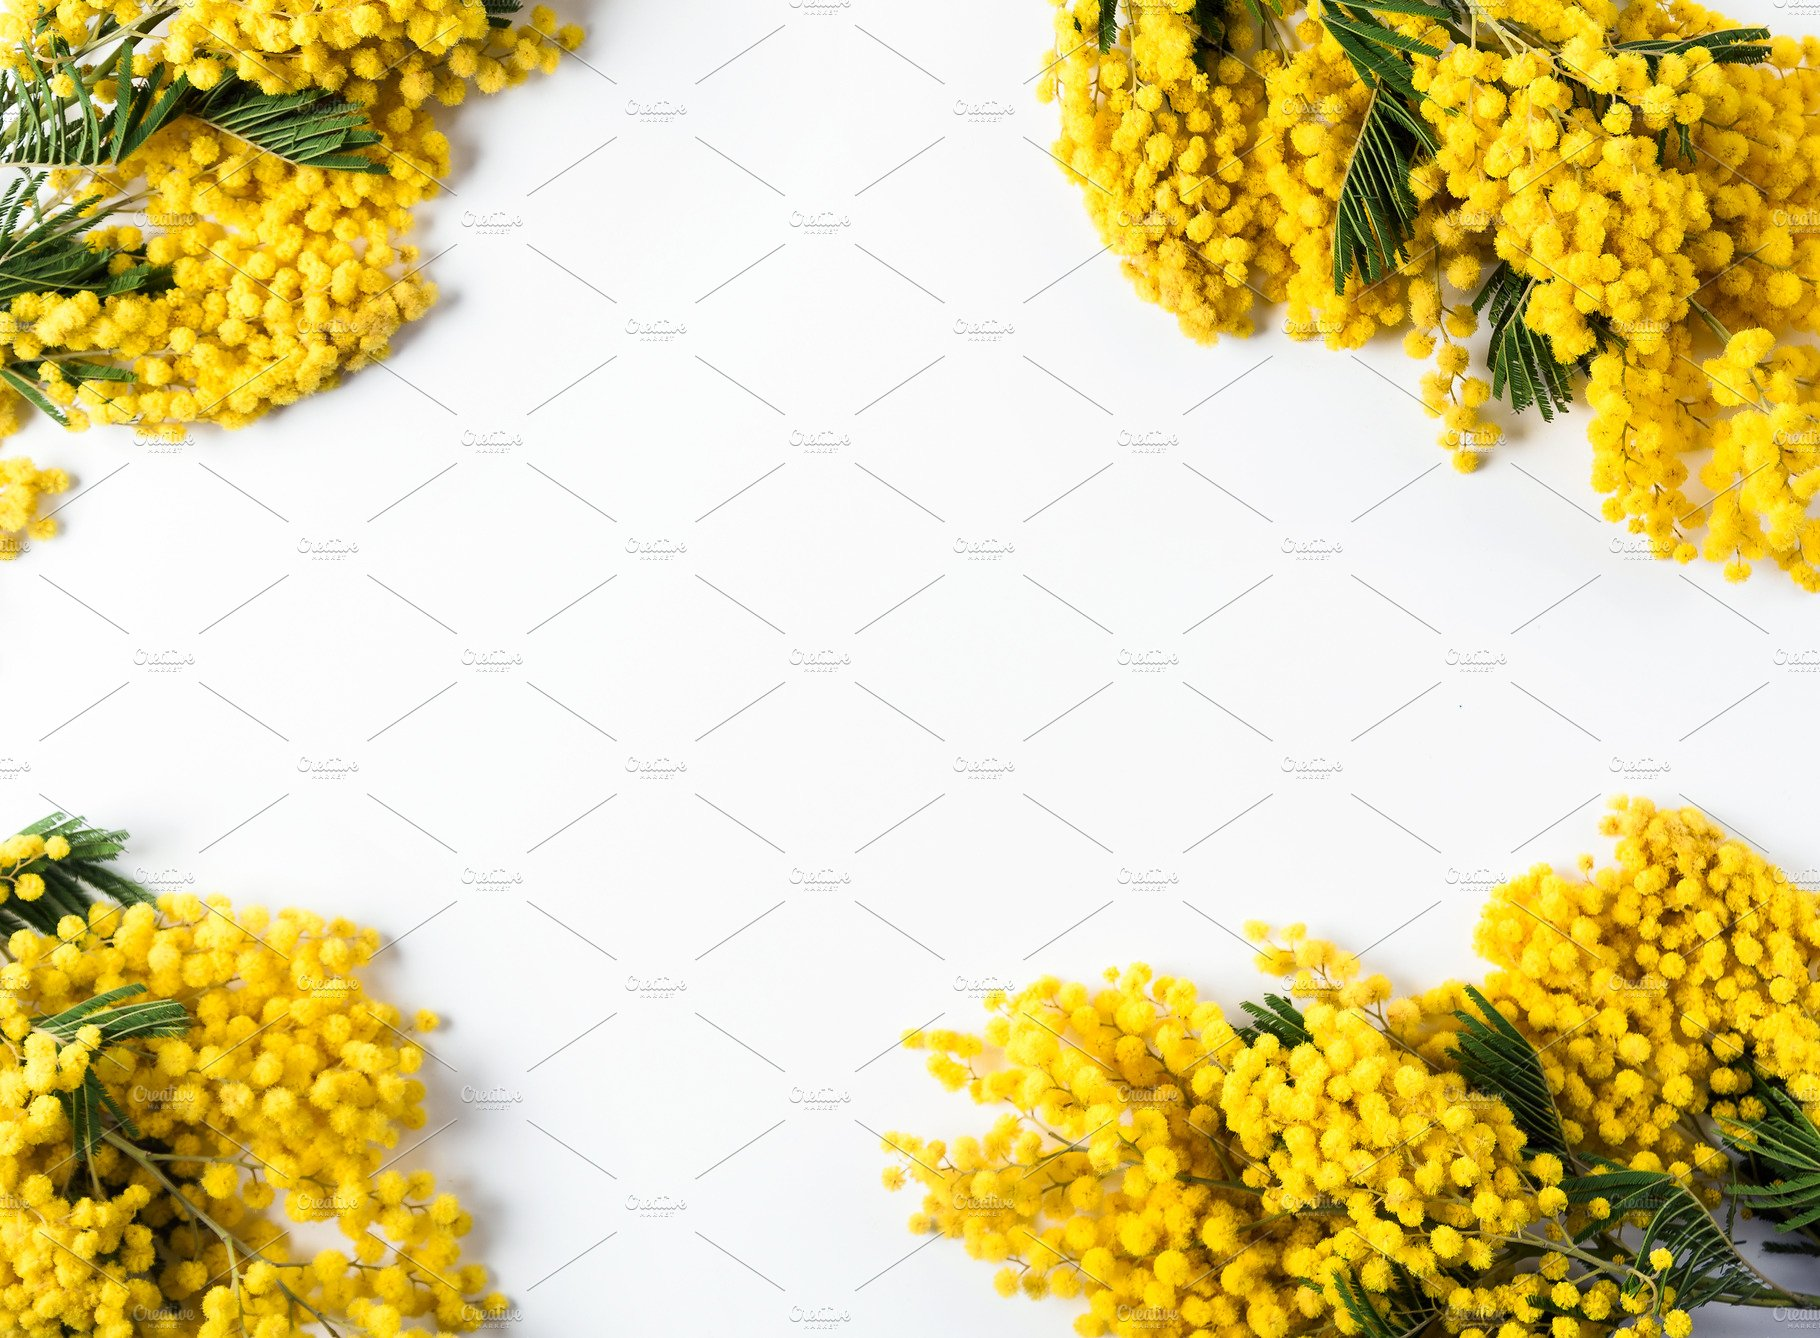 Background Of Yellow Mimosa The Sym Food Images Creative Market